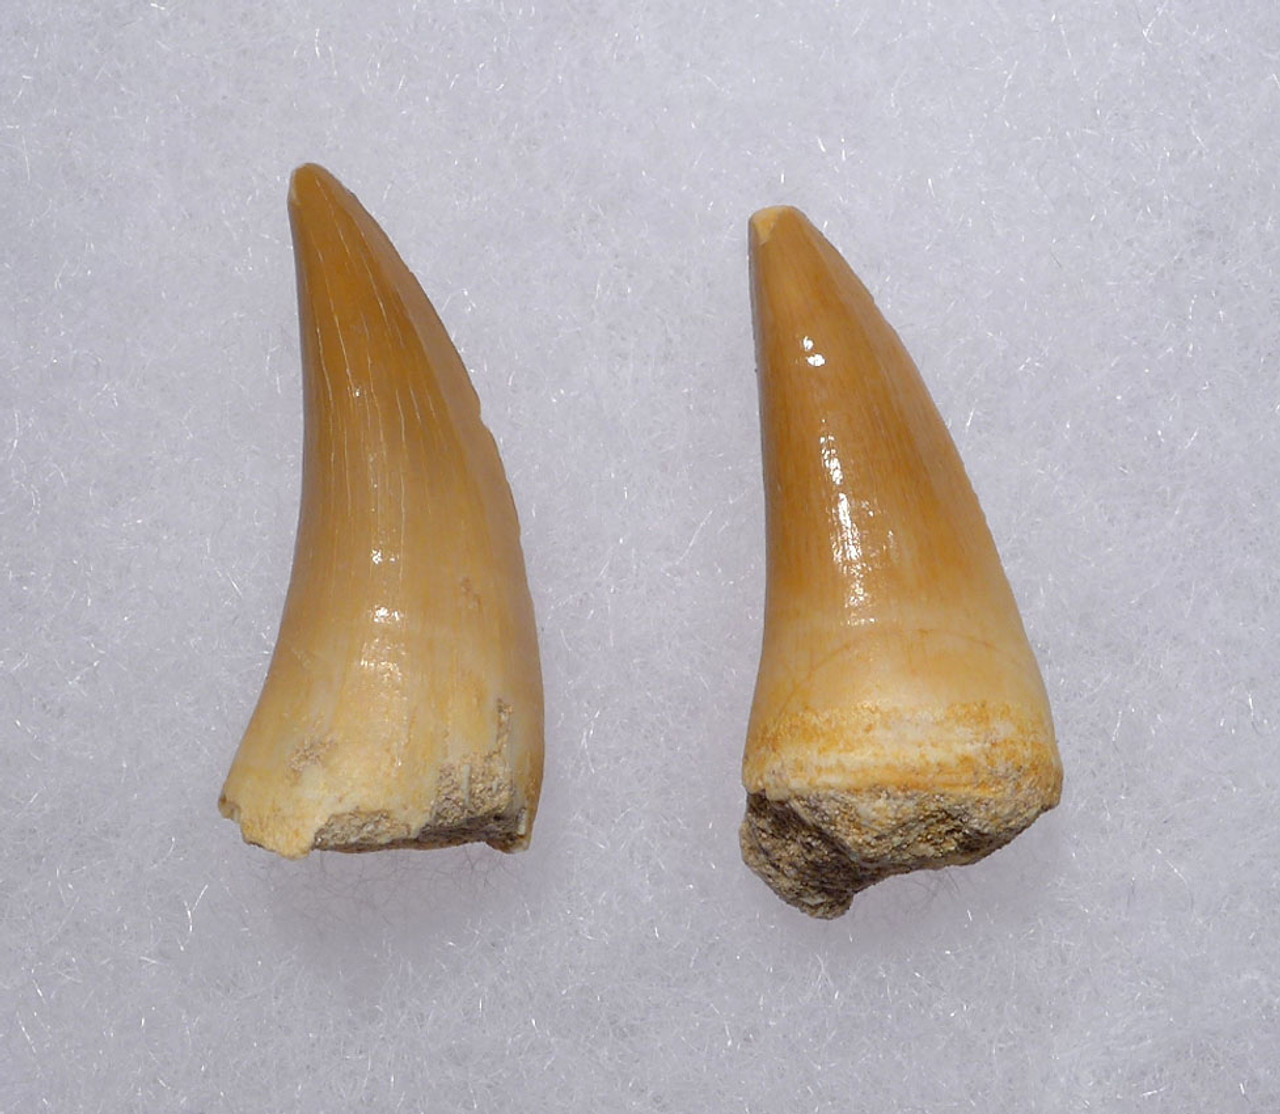 TWO MOSASAUR FOSSIL TEETH FROM A HALISAURUS MARINE REPTILE *DT1-134